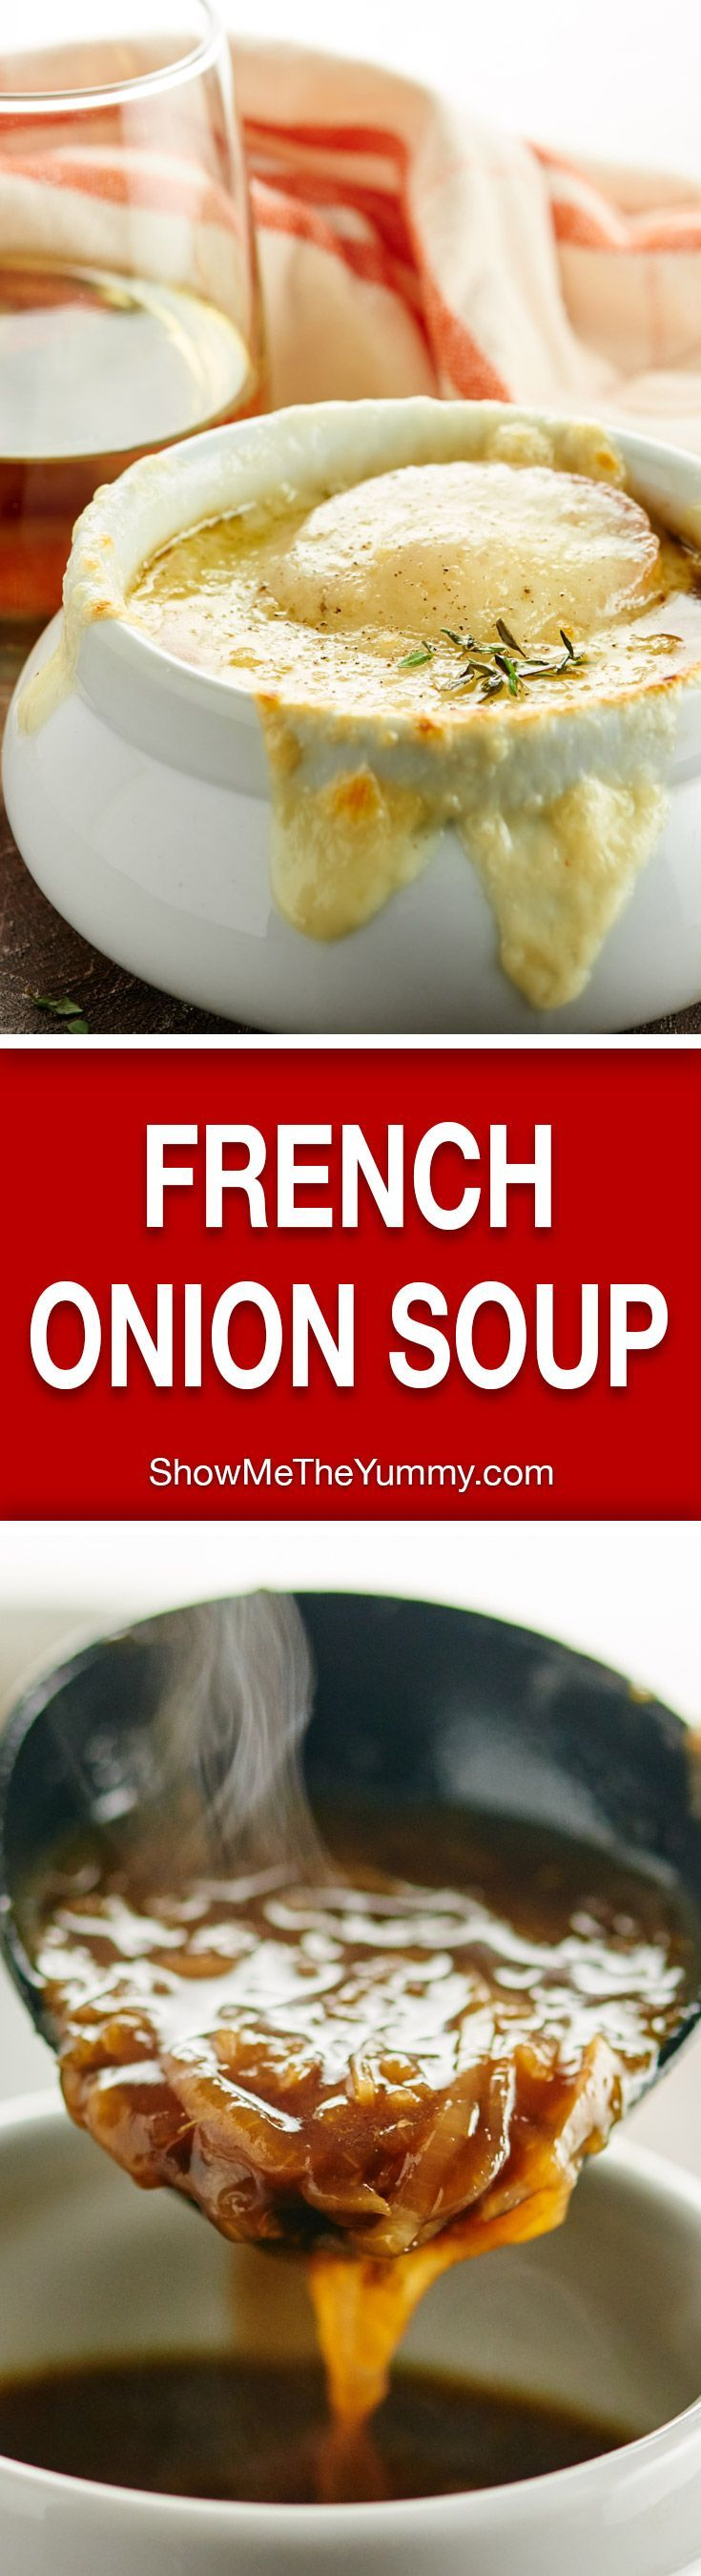 ... Soup Recipes on Pinterest | French Onion Soups, French Onion and Soups